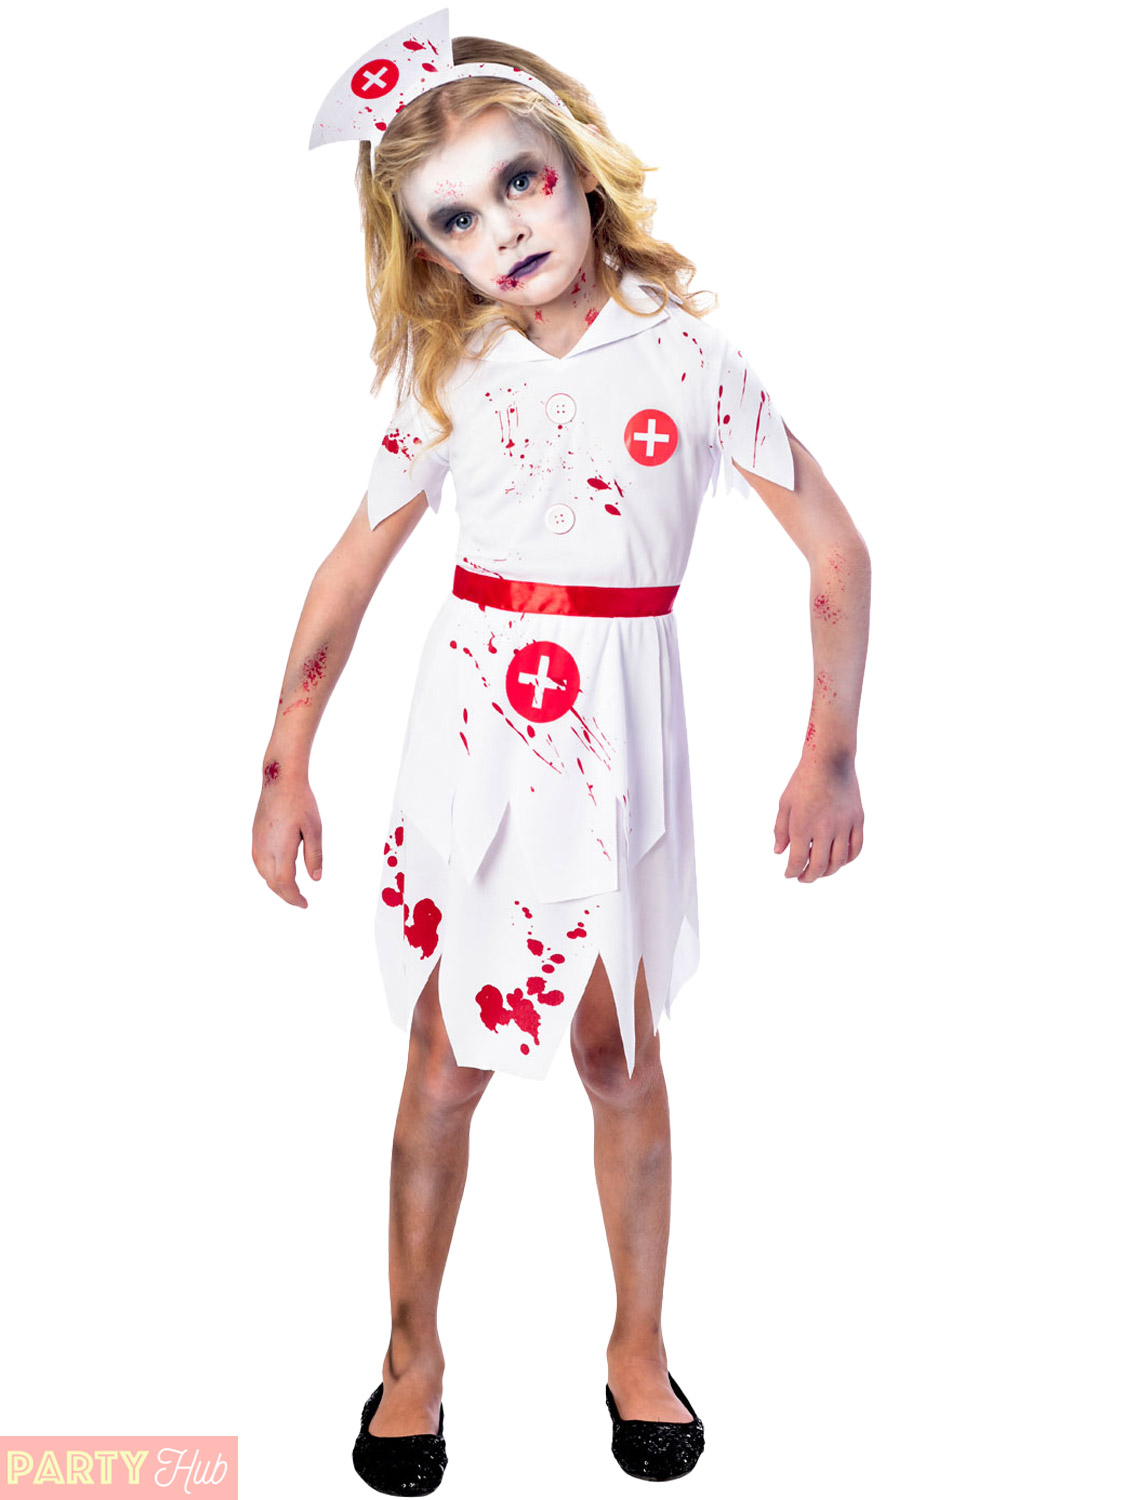 Details about Girls Zombie Nurse Costume Childs Halloween Fancy Dress Kids  Horror Outfit